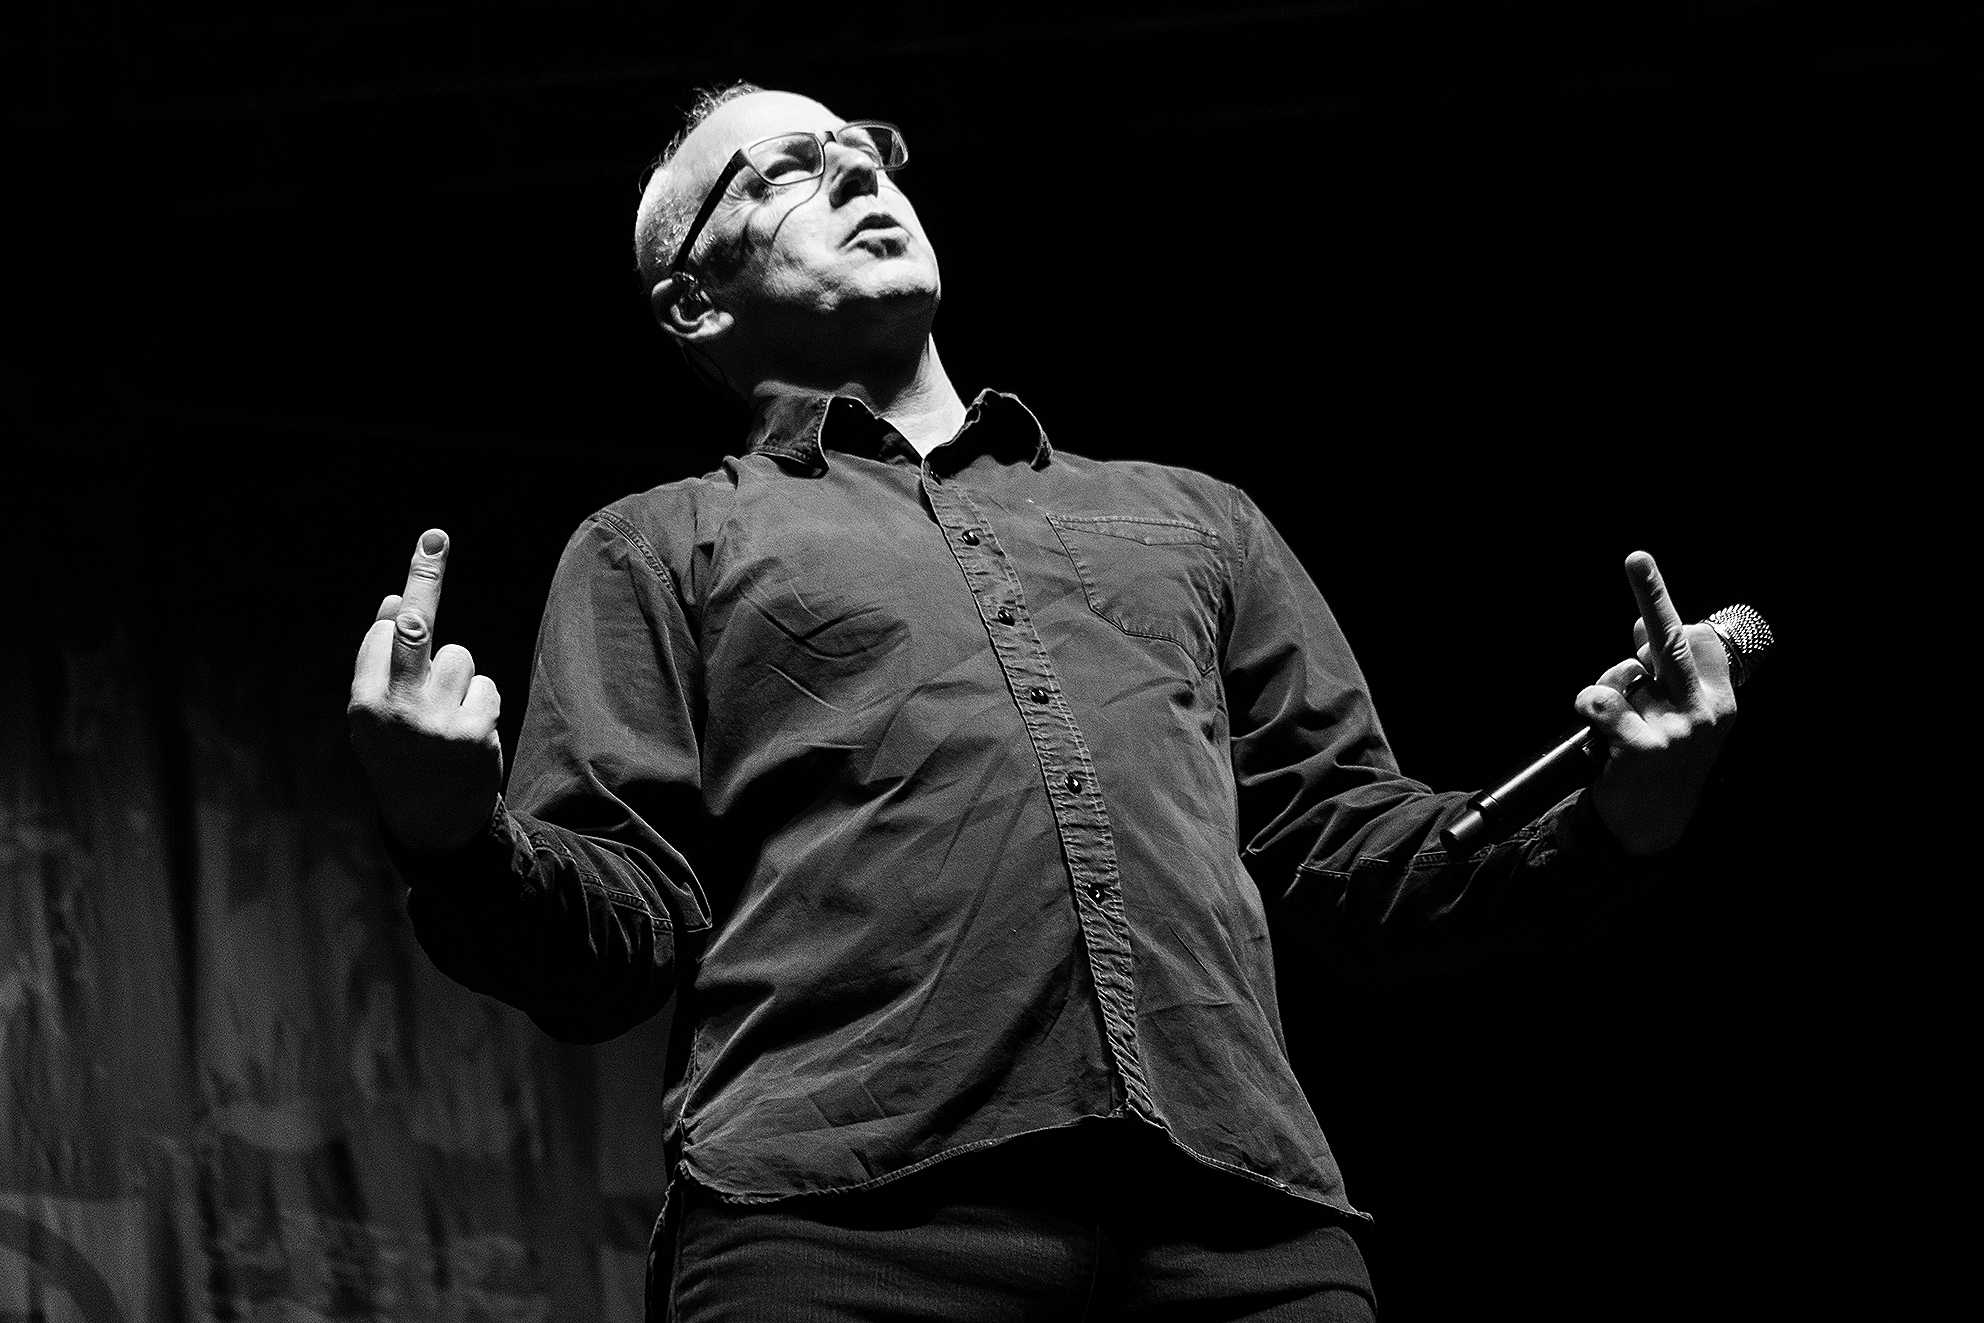 Greg Graffin // Bad Religion